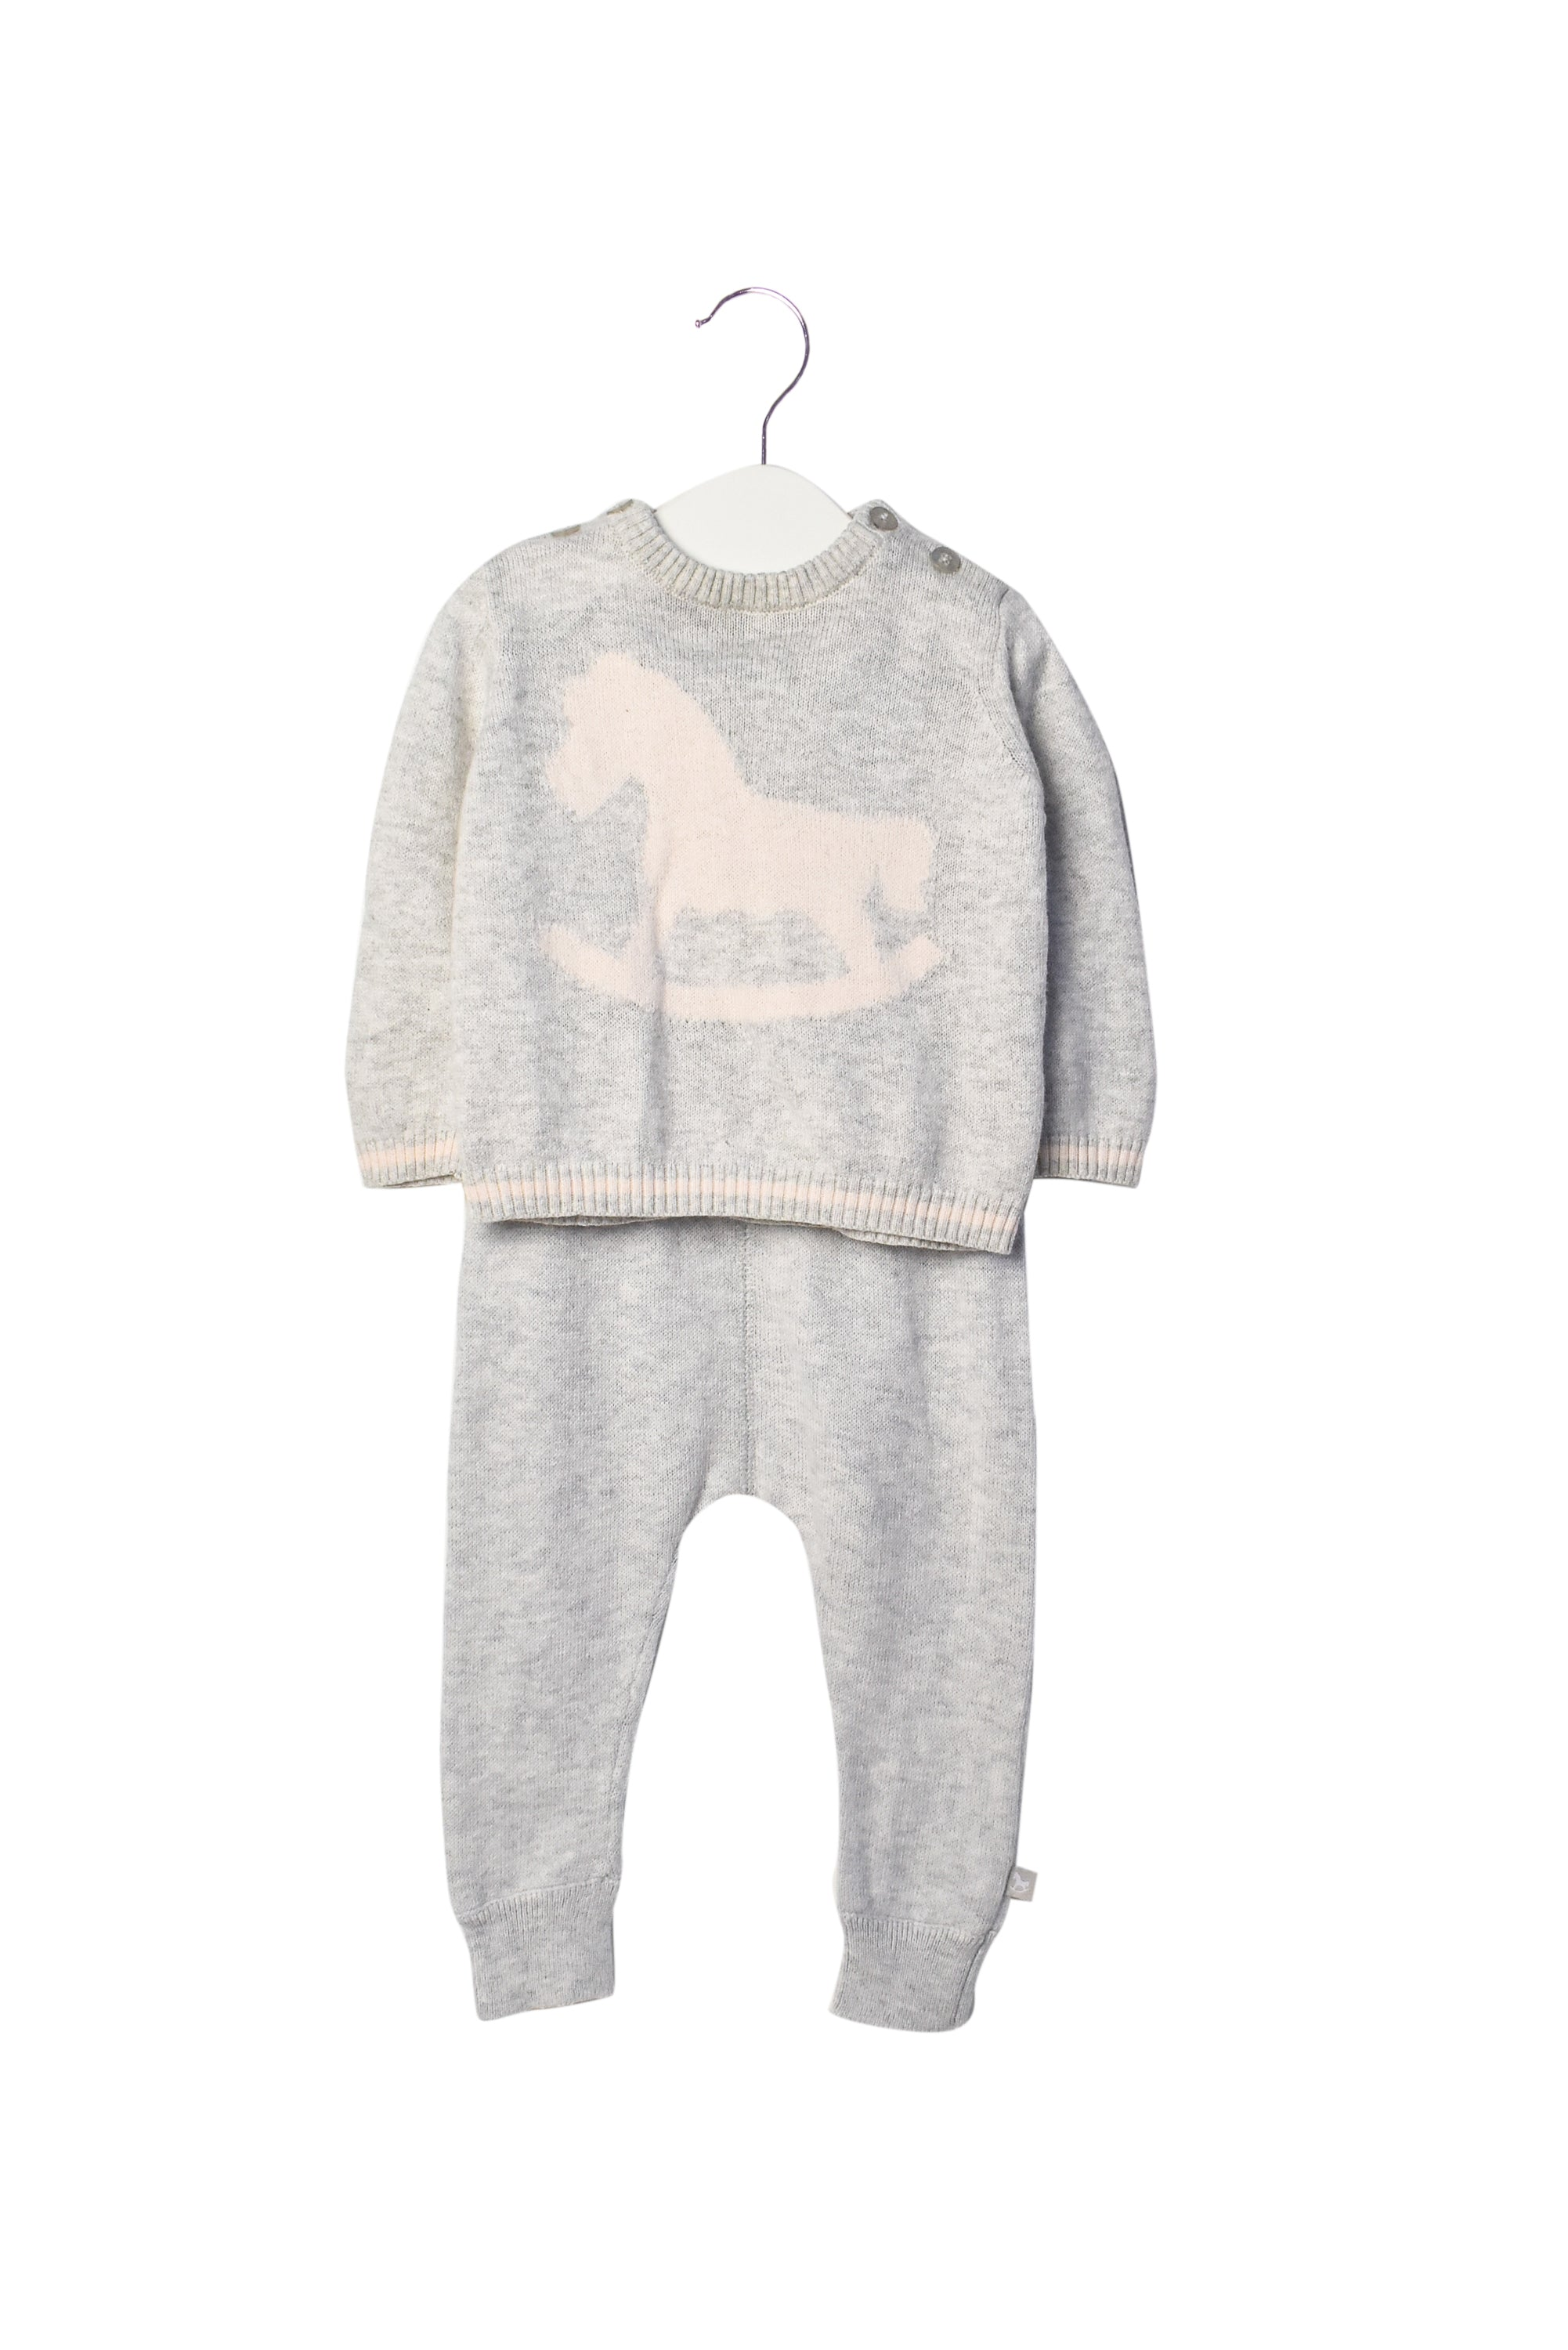 10006824 The Little Tailor Baby~Sweater and Pants 3-6M at Retykle